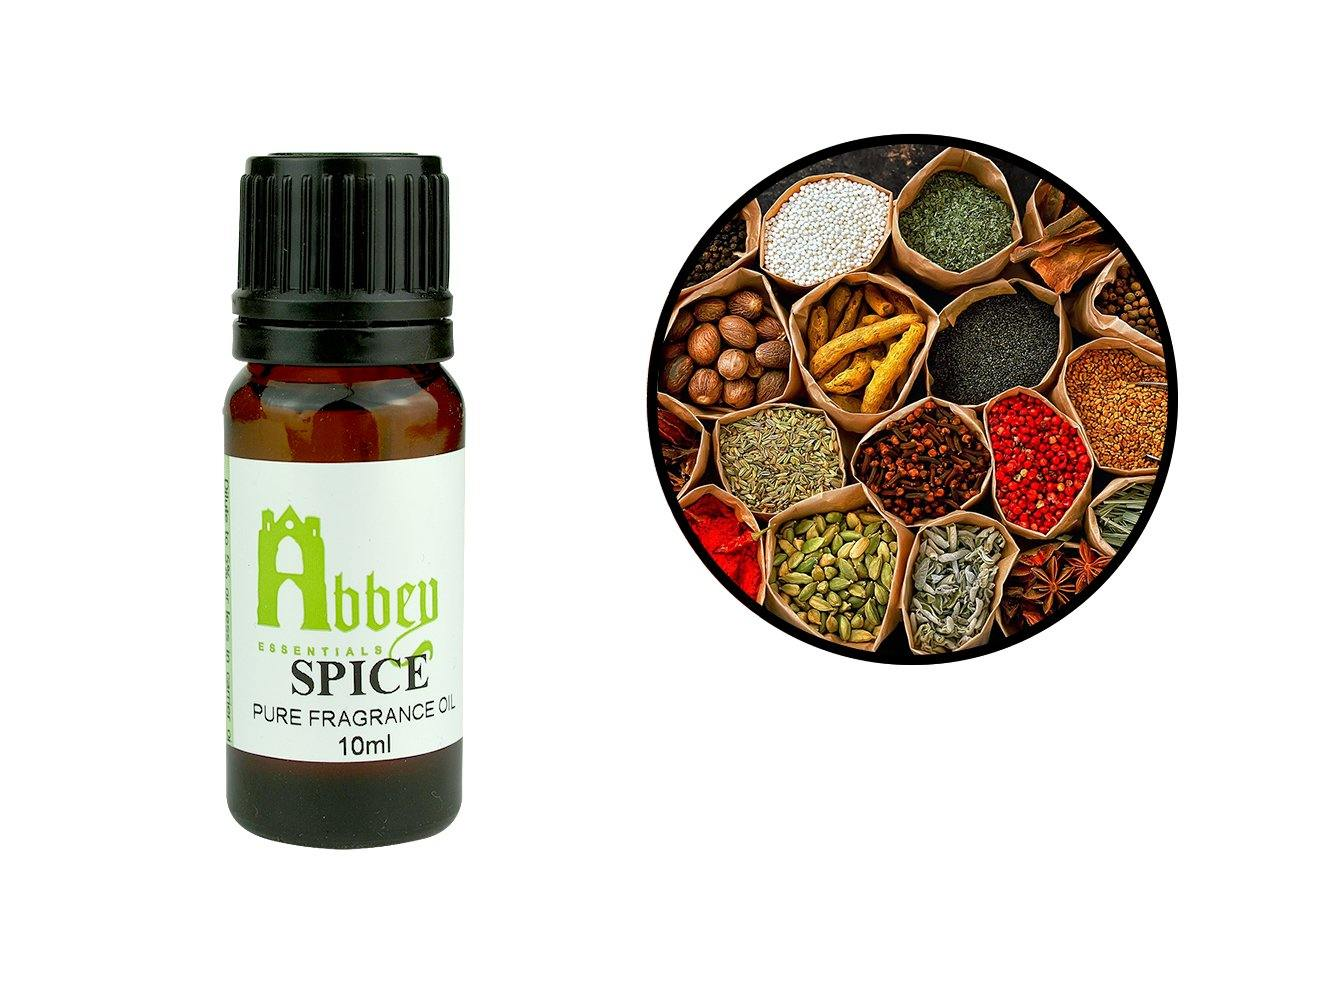 Spice Fragrance 10ml